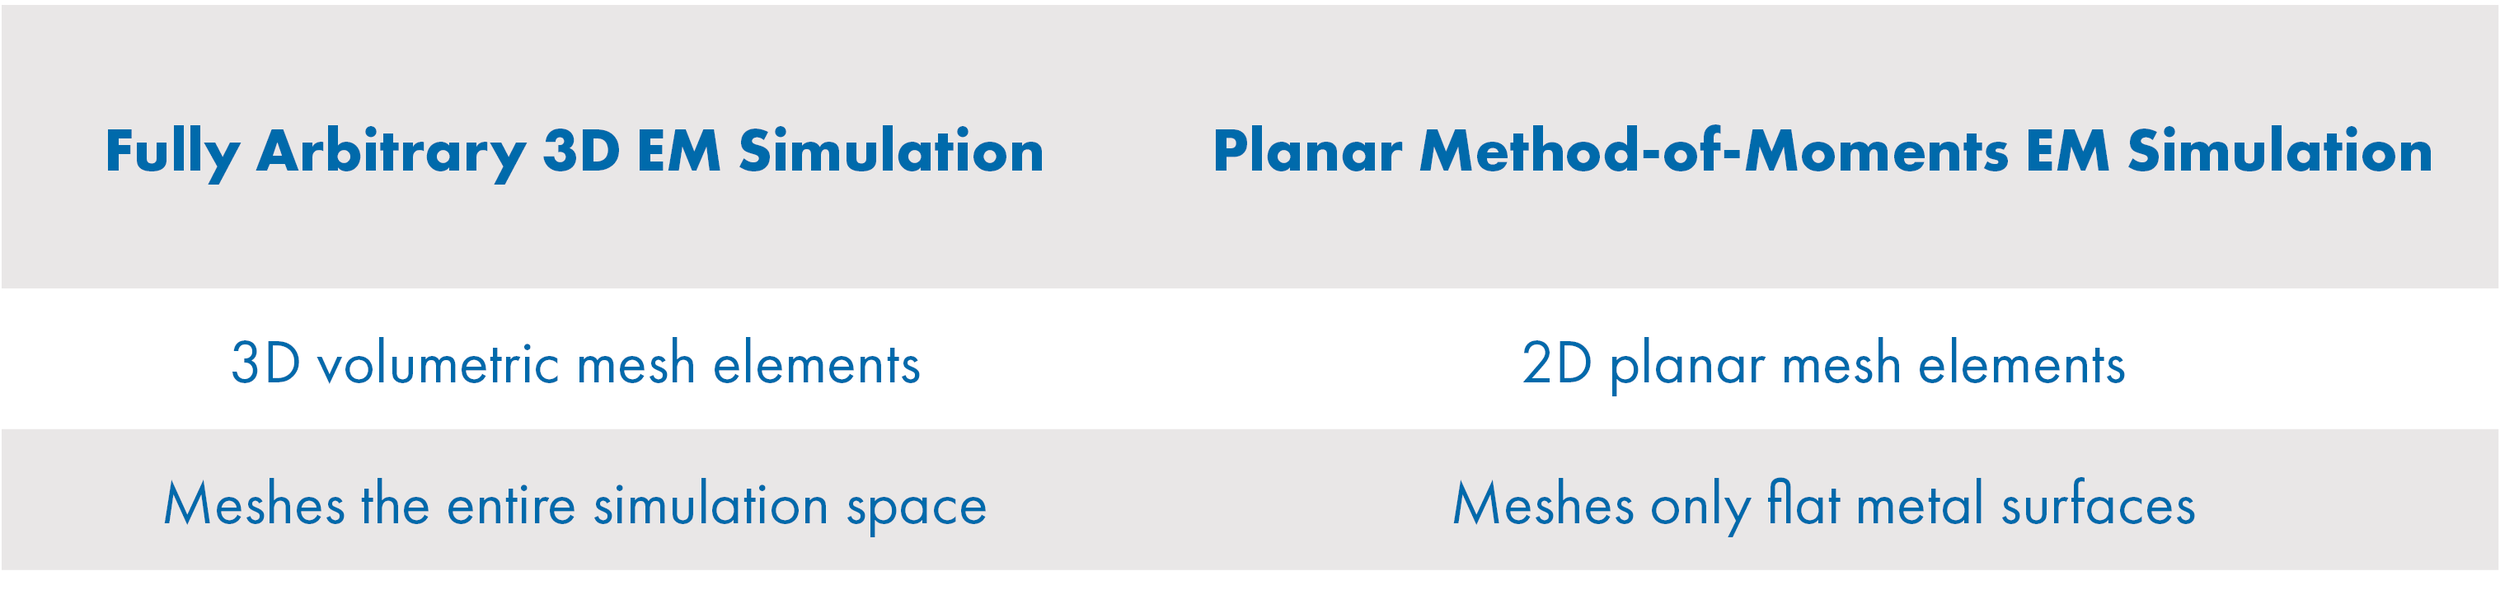 Table 1: Comparison of meshing between planar and fully arbitrary 3D EM simulation